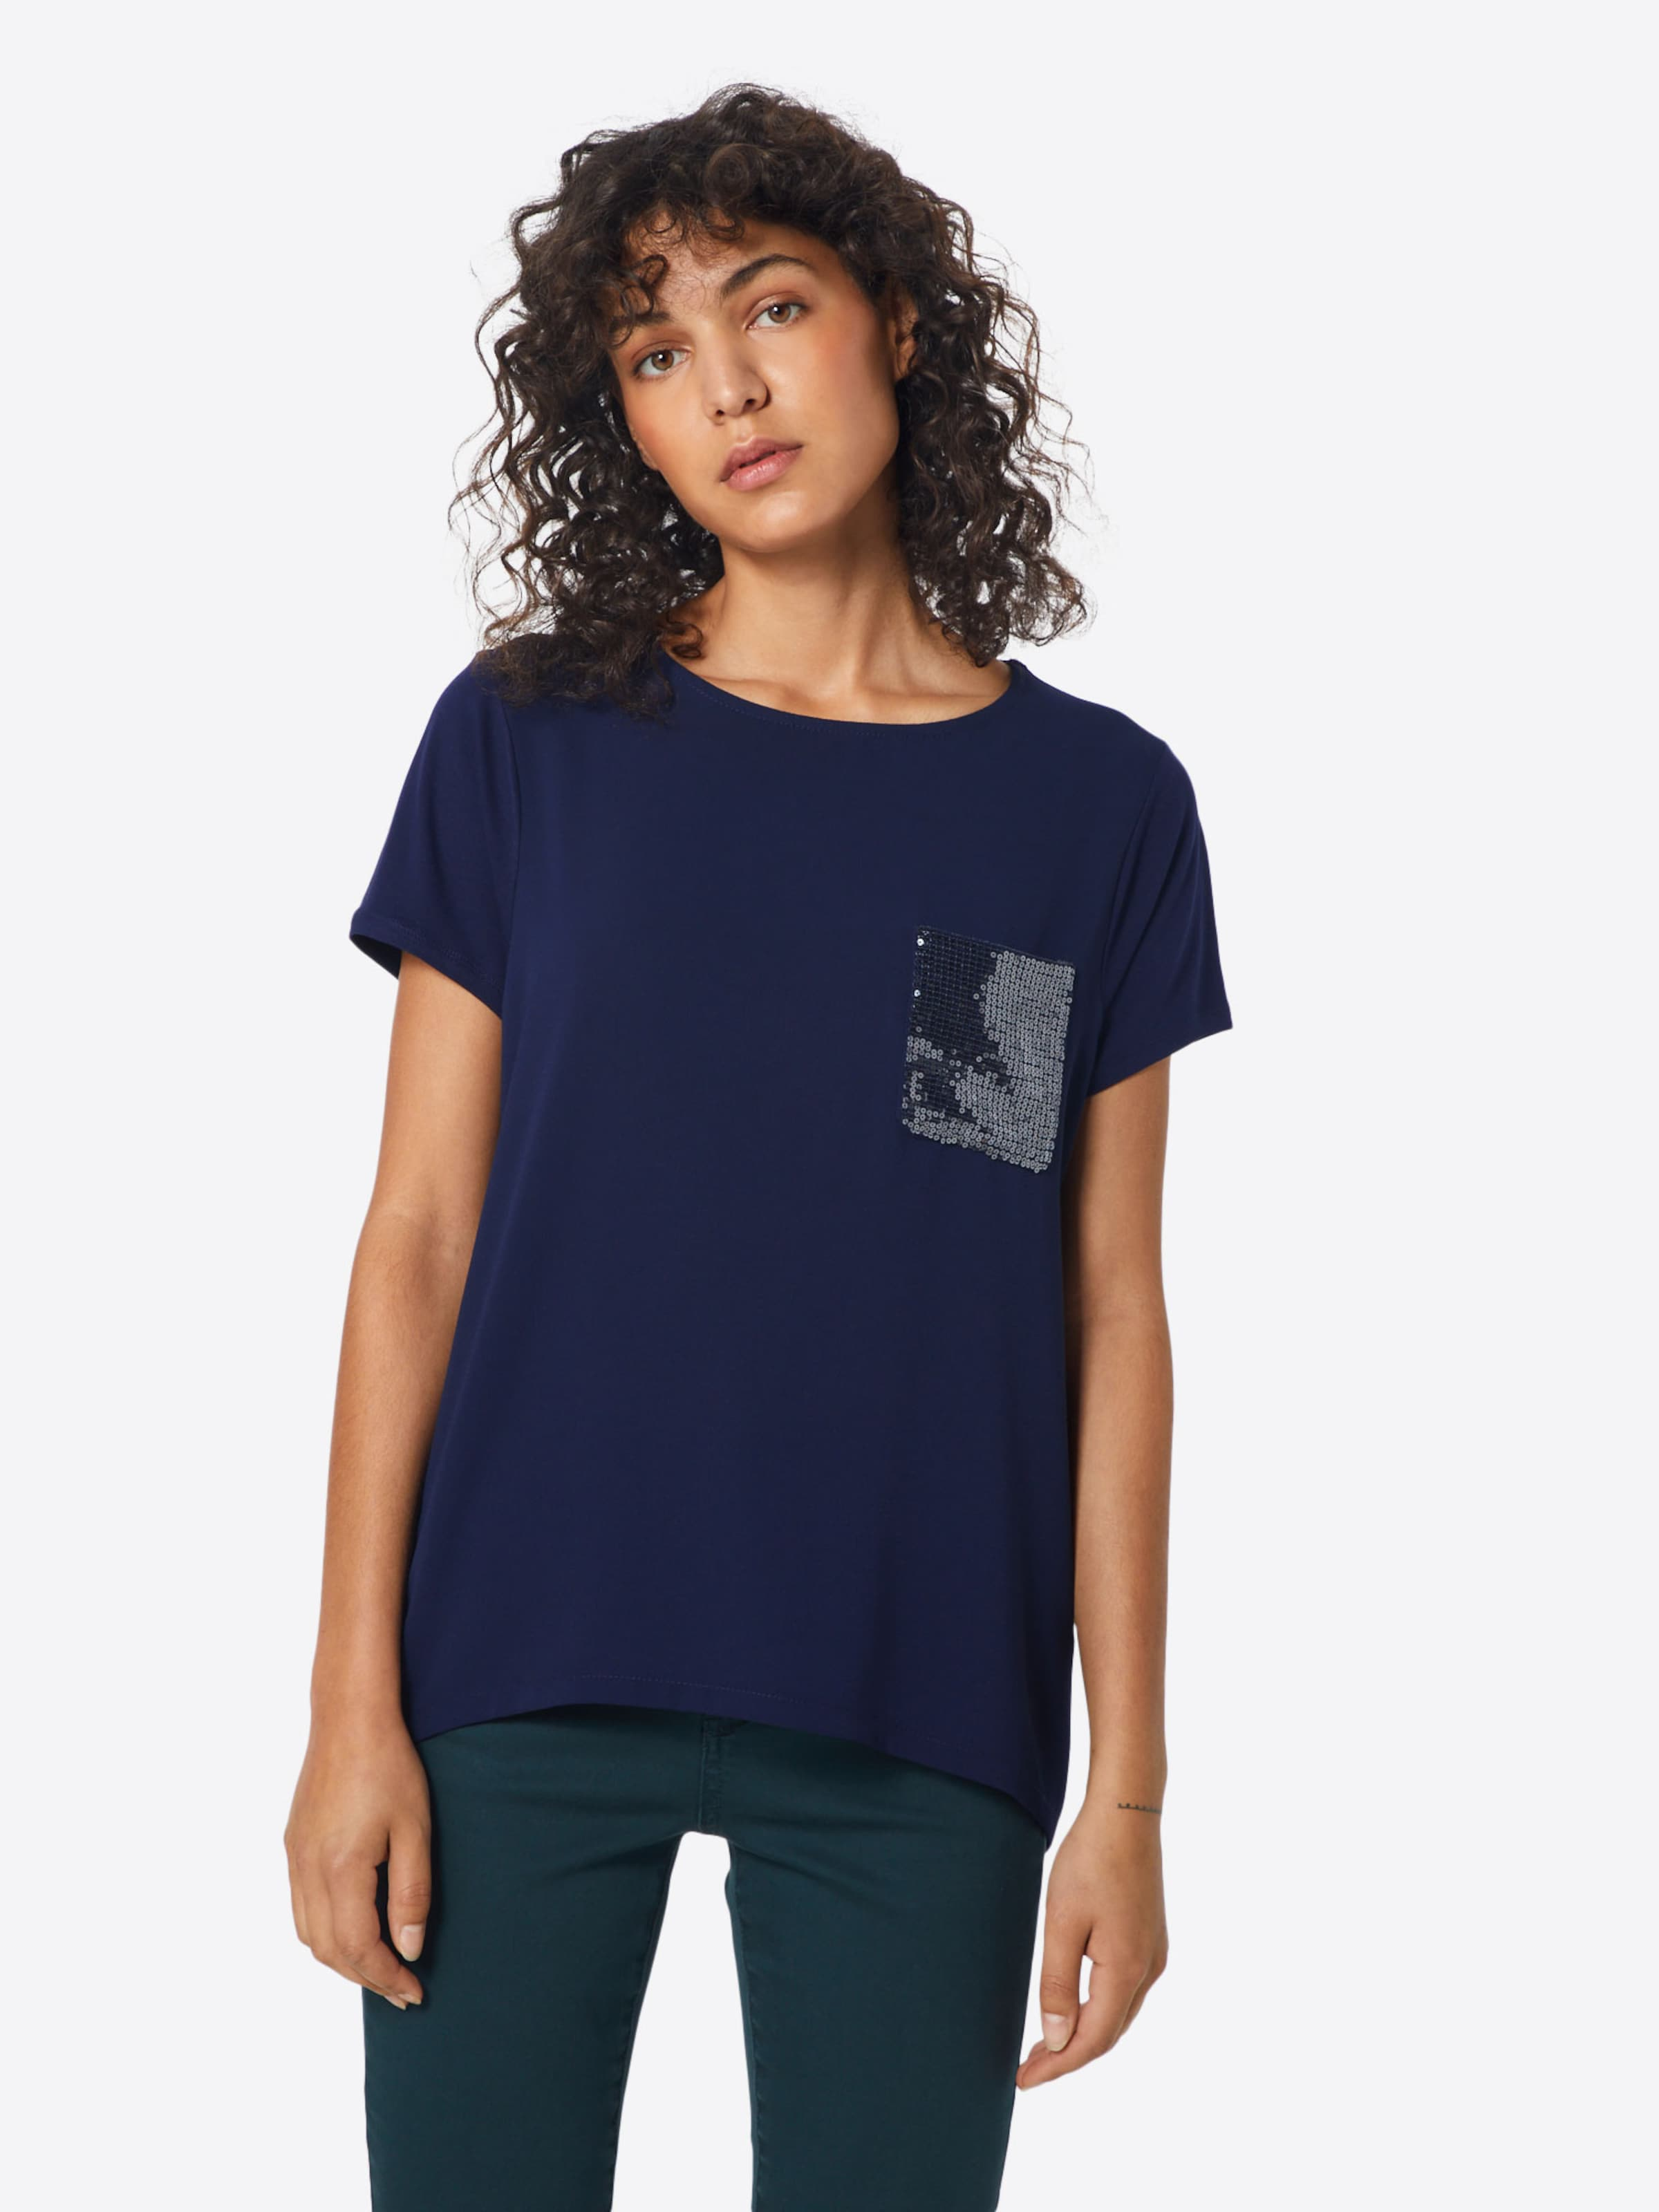 You About 'nika' Dunkelblau Shirt In l5uKcFJT13